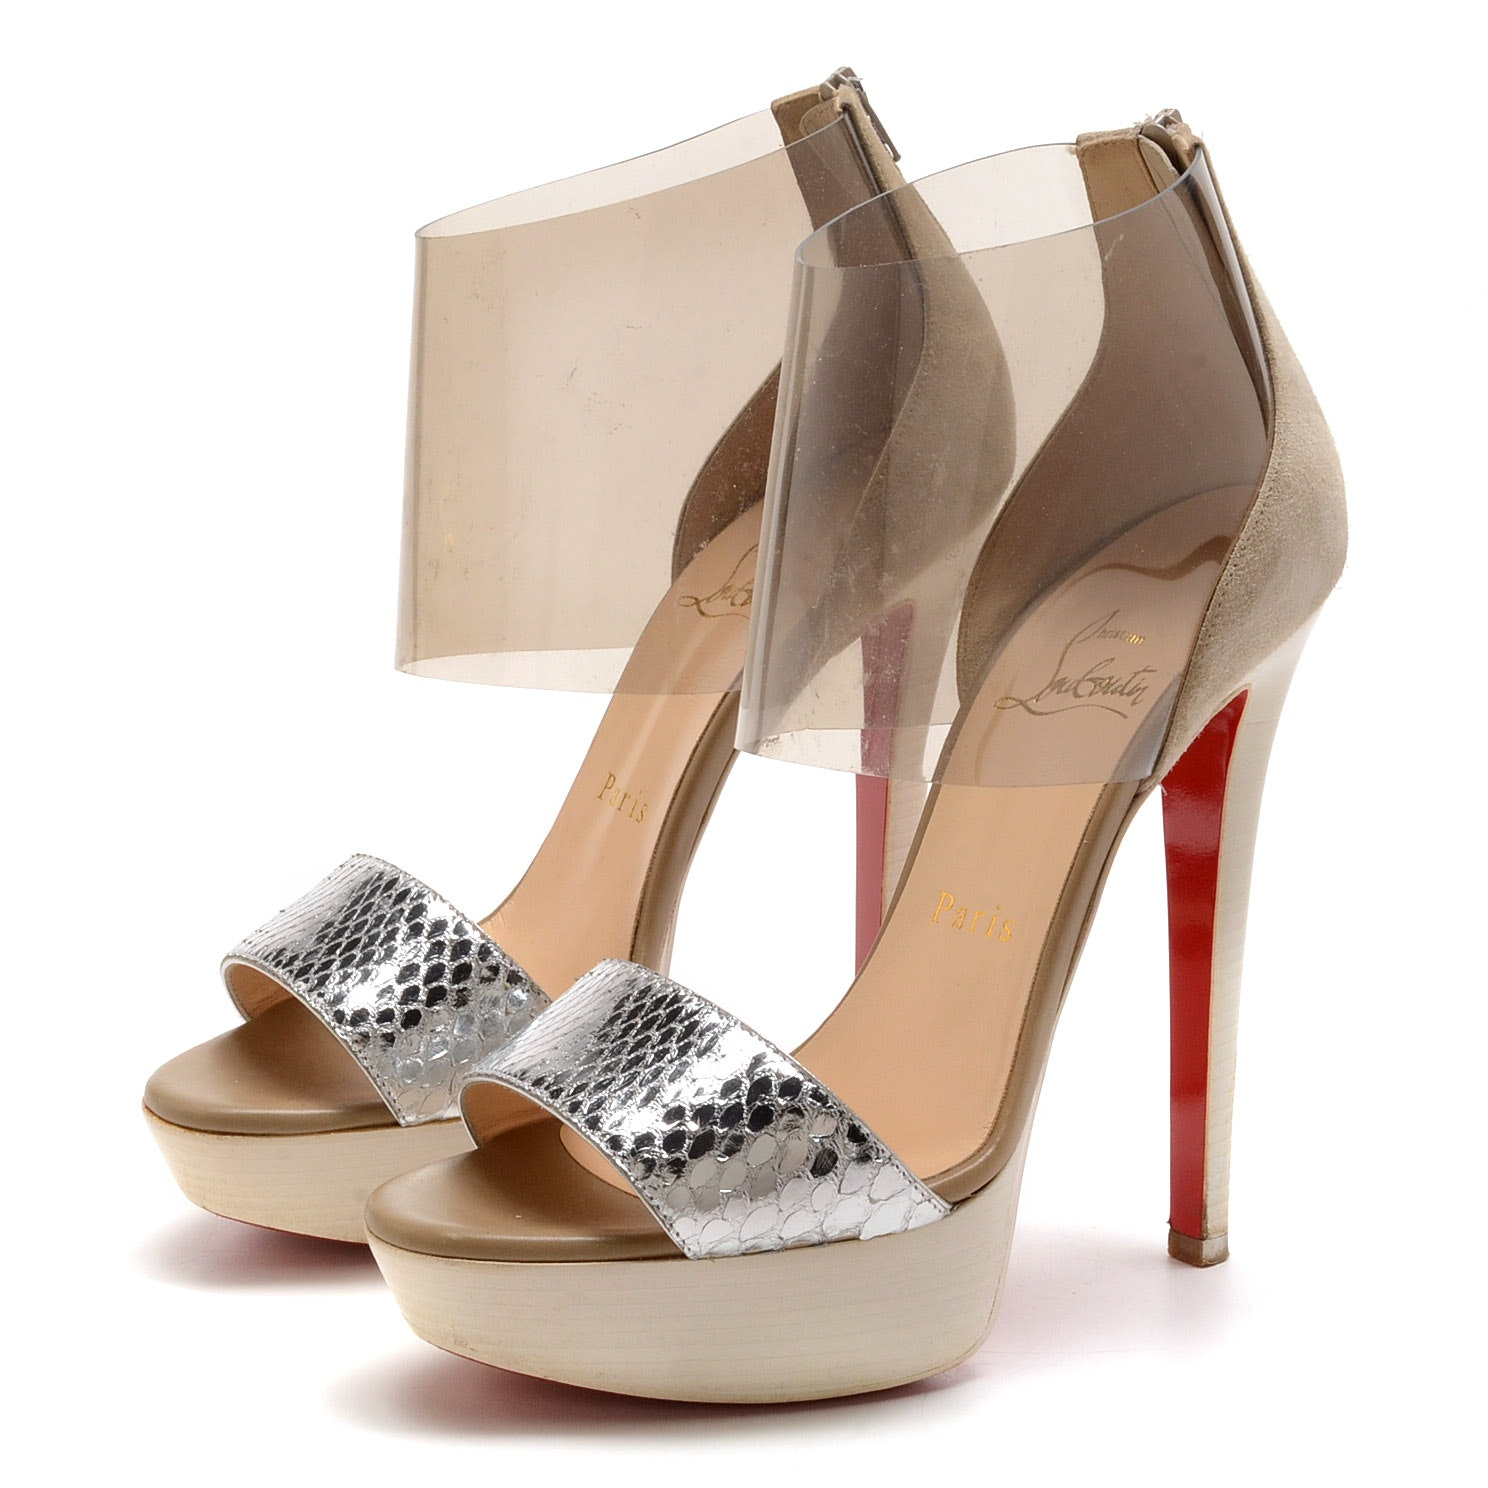 Christian Louboutin of Paris Silver Snakeskin Embossed Metallic and Camel Suede Leather Platform Stiletto Dress Sandals with Vinyl Strap